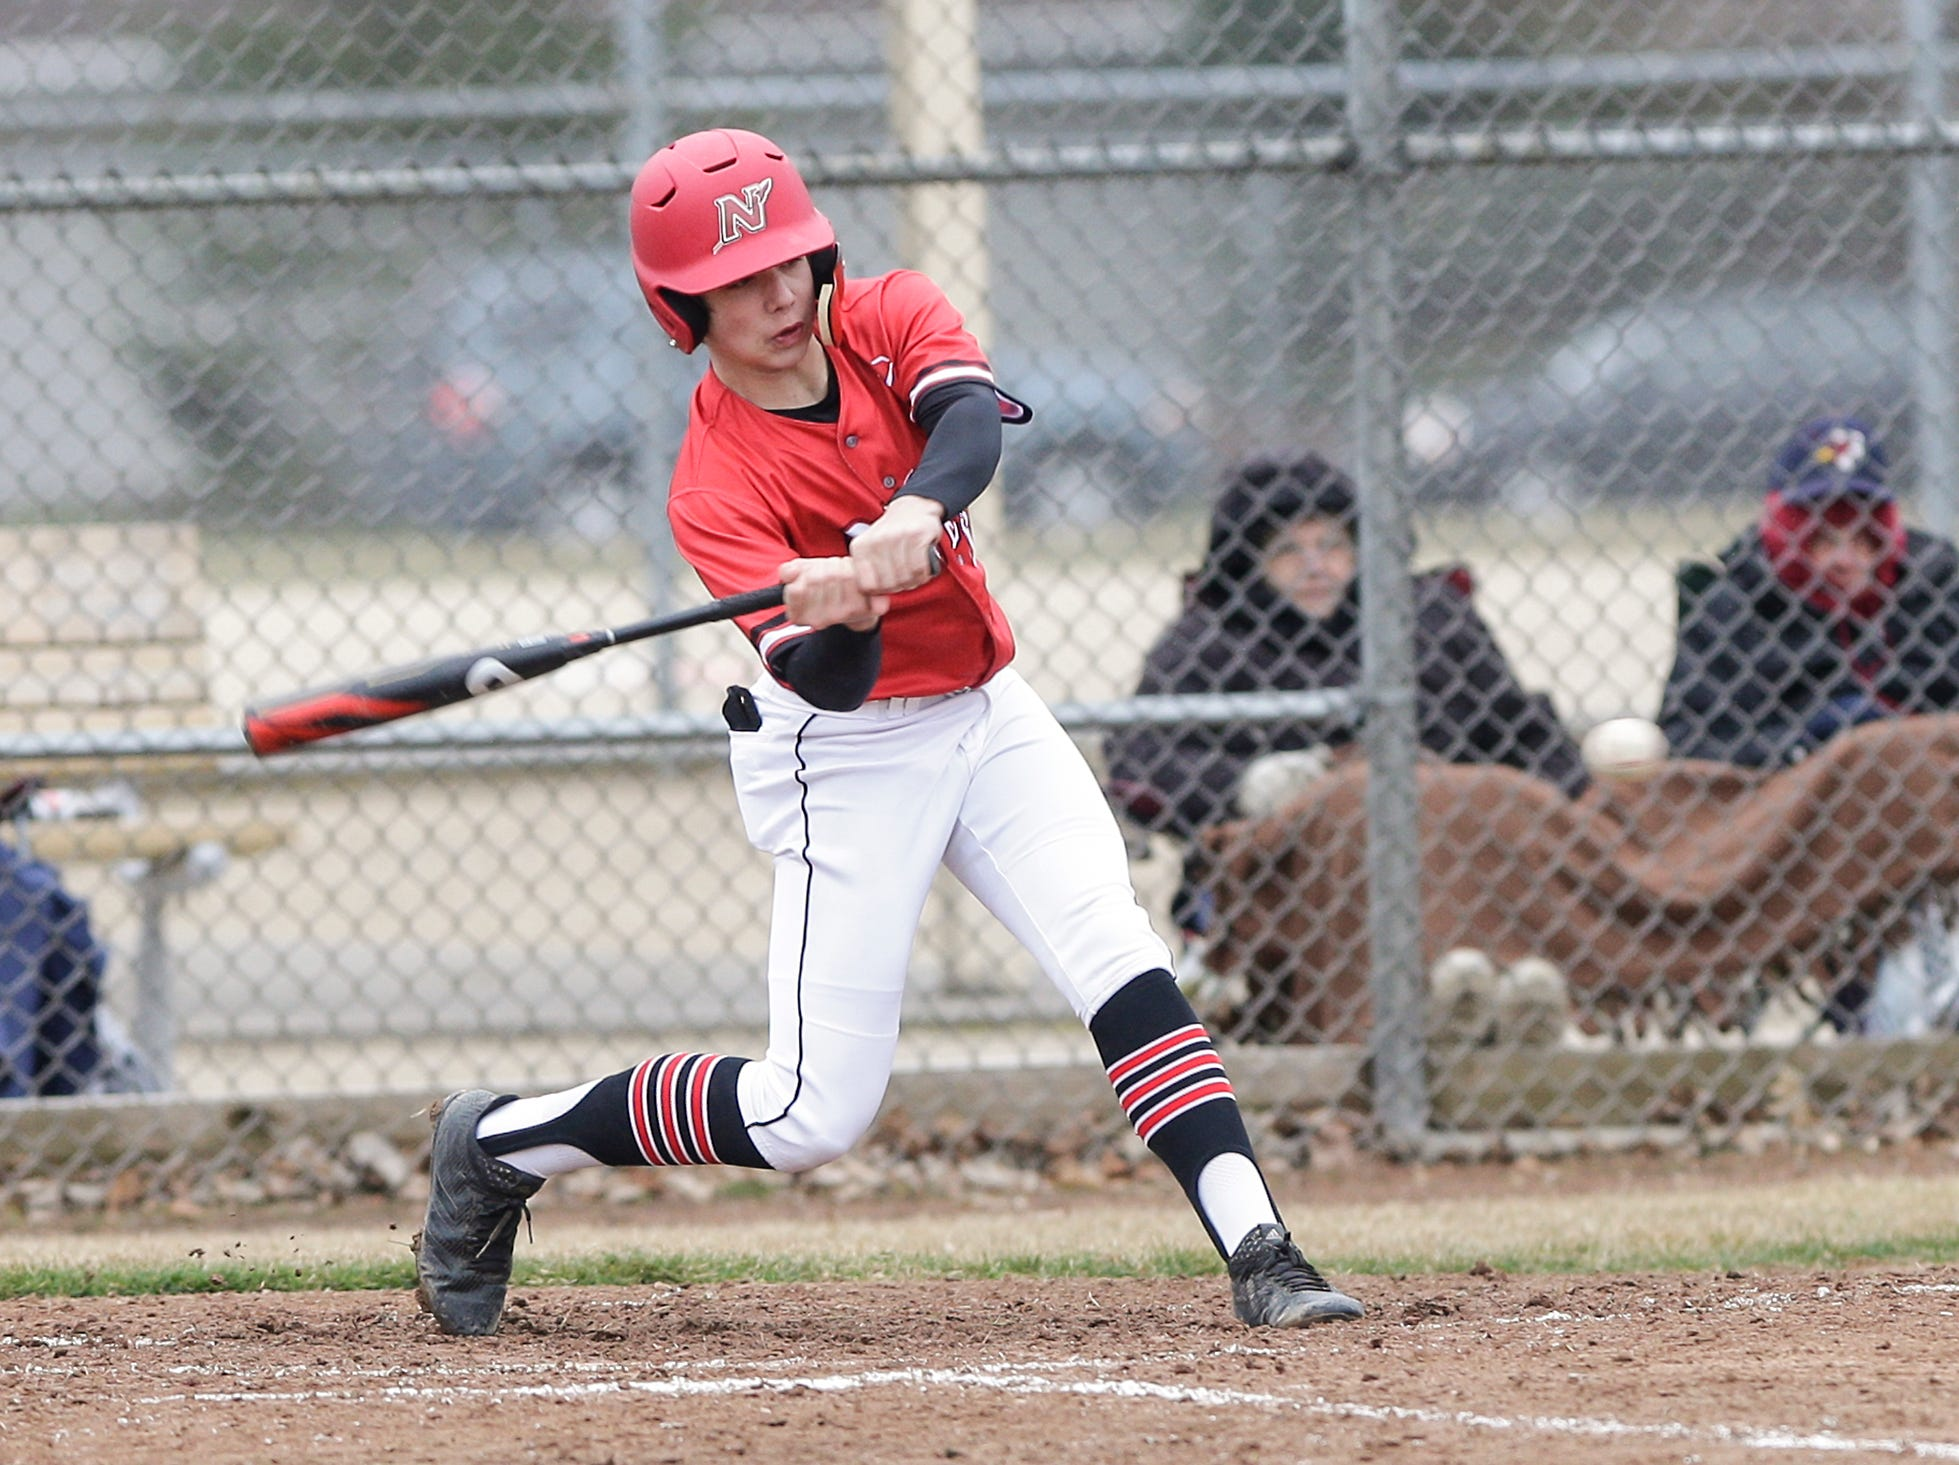 Neenah High School baseball's Jaden Hackbarth swings at a pitch against Fond du Lac High School during their game Thursday, April 18, 2019 in Fond du Lac, Wis. Doug Raflik/USA TODAY NETWORK-Wisconsin